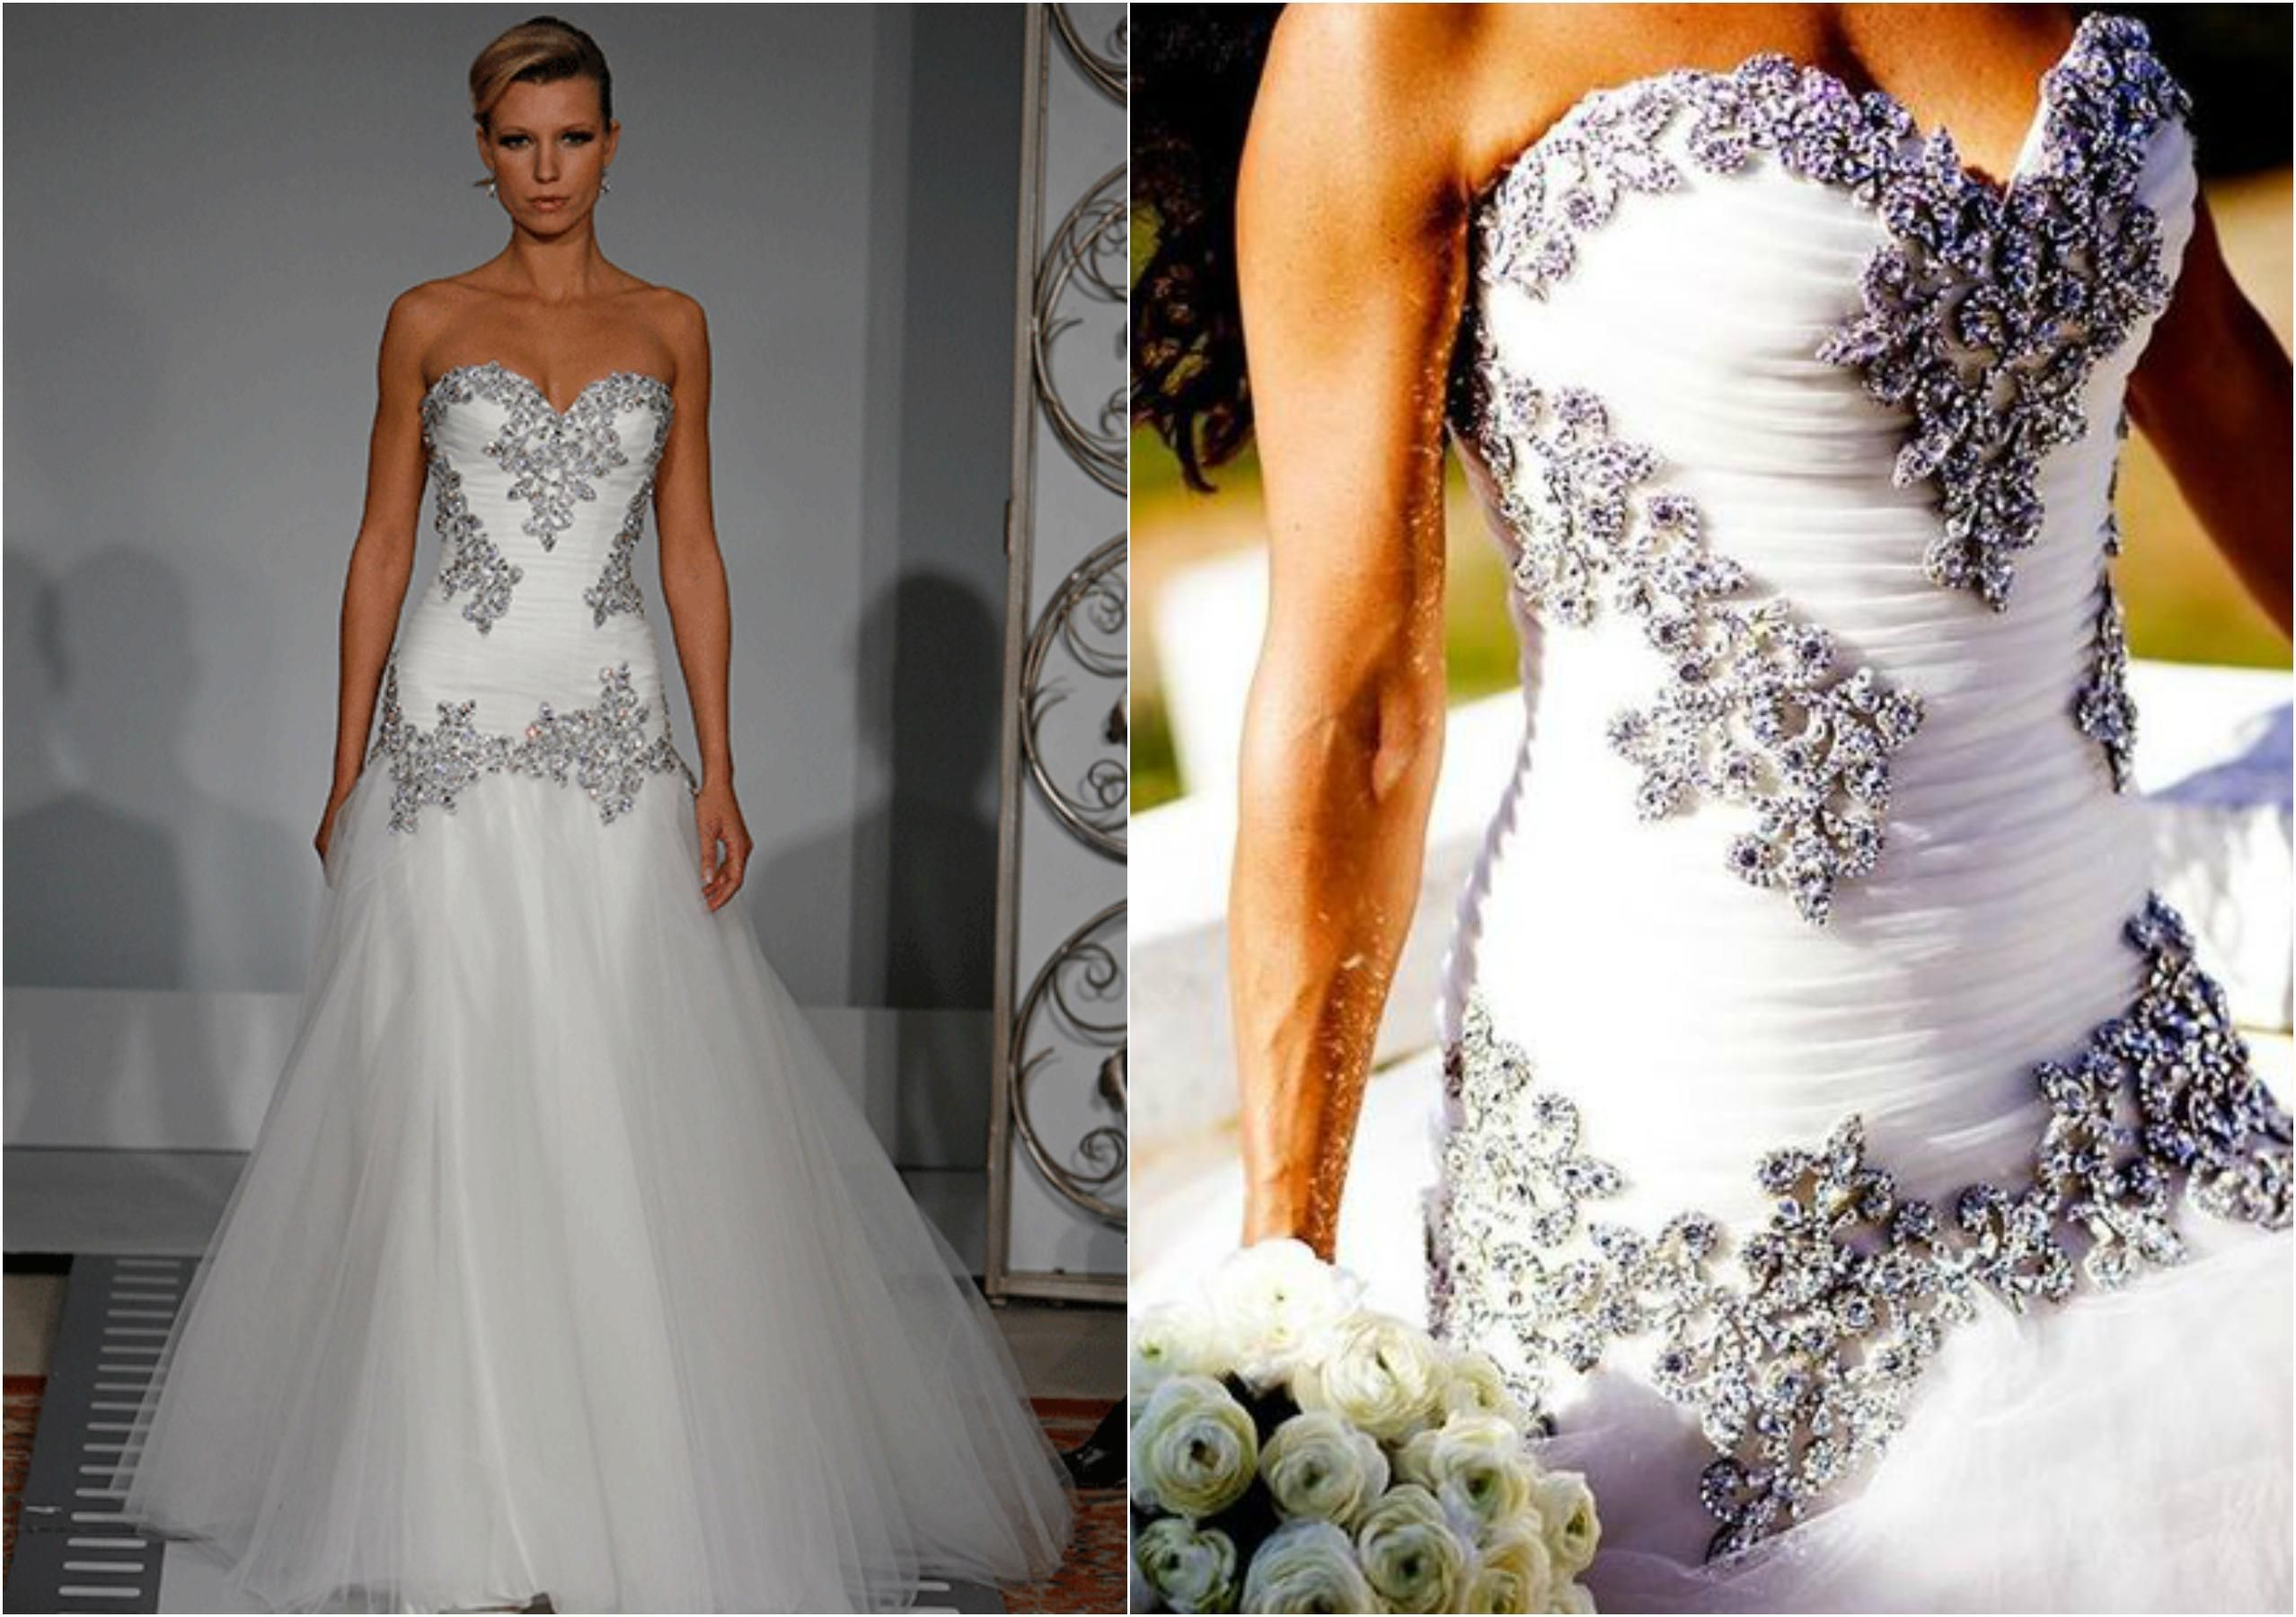 Wedding dresses with lots of rhinestones  Pin by Joey Barragan on CRYSTALPearls stones sparkly shiny